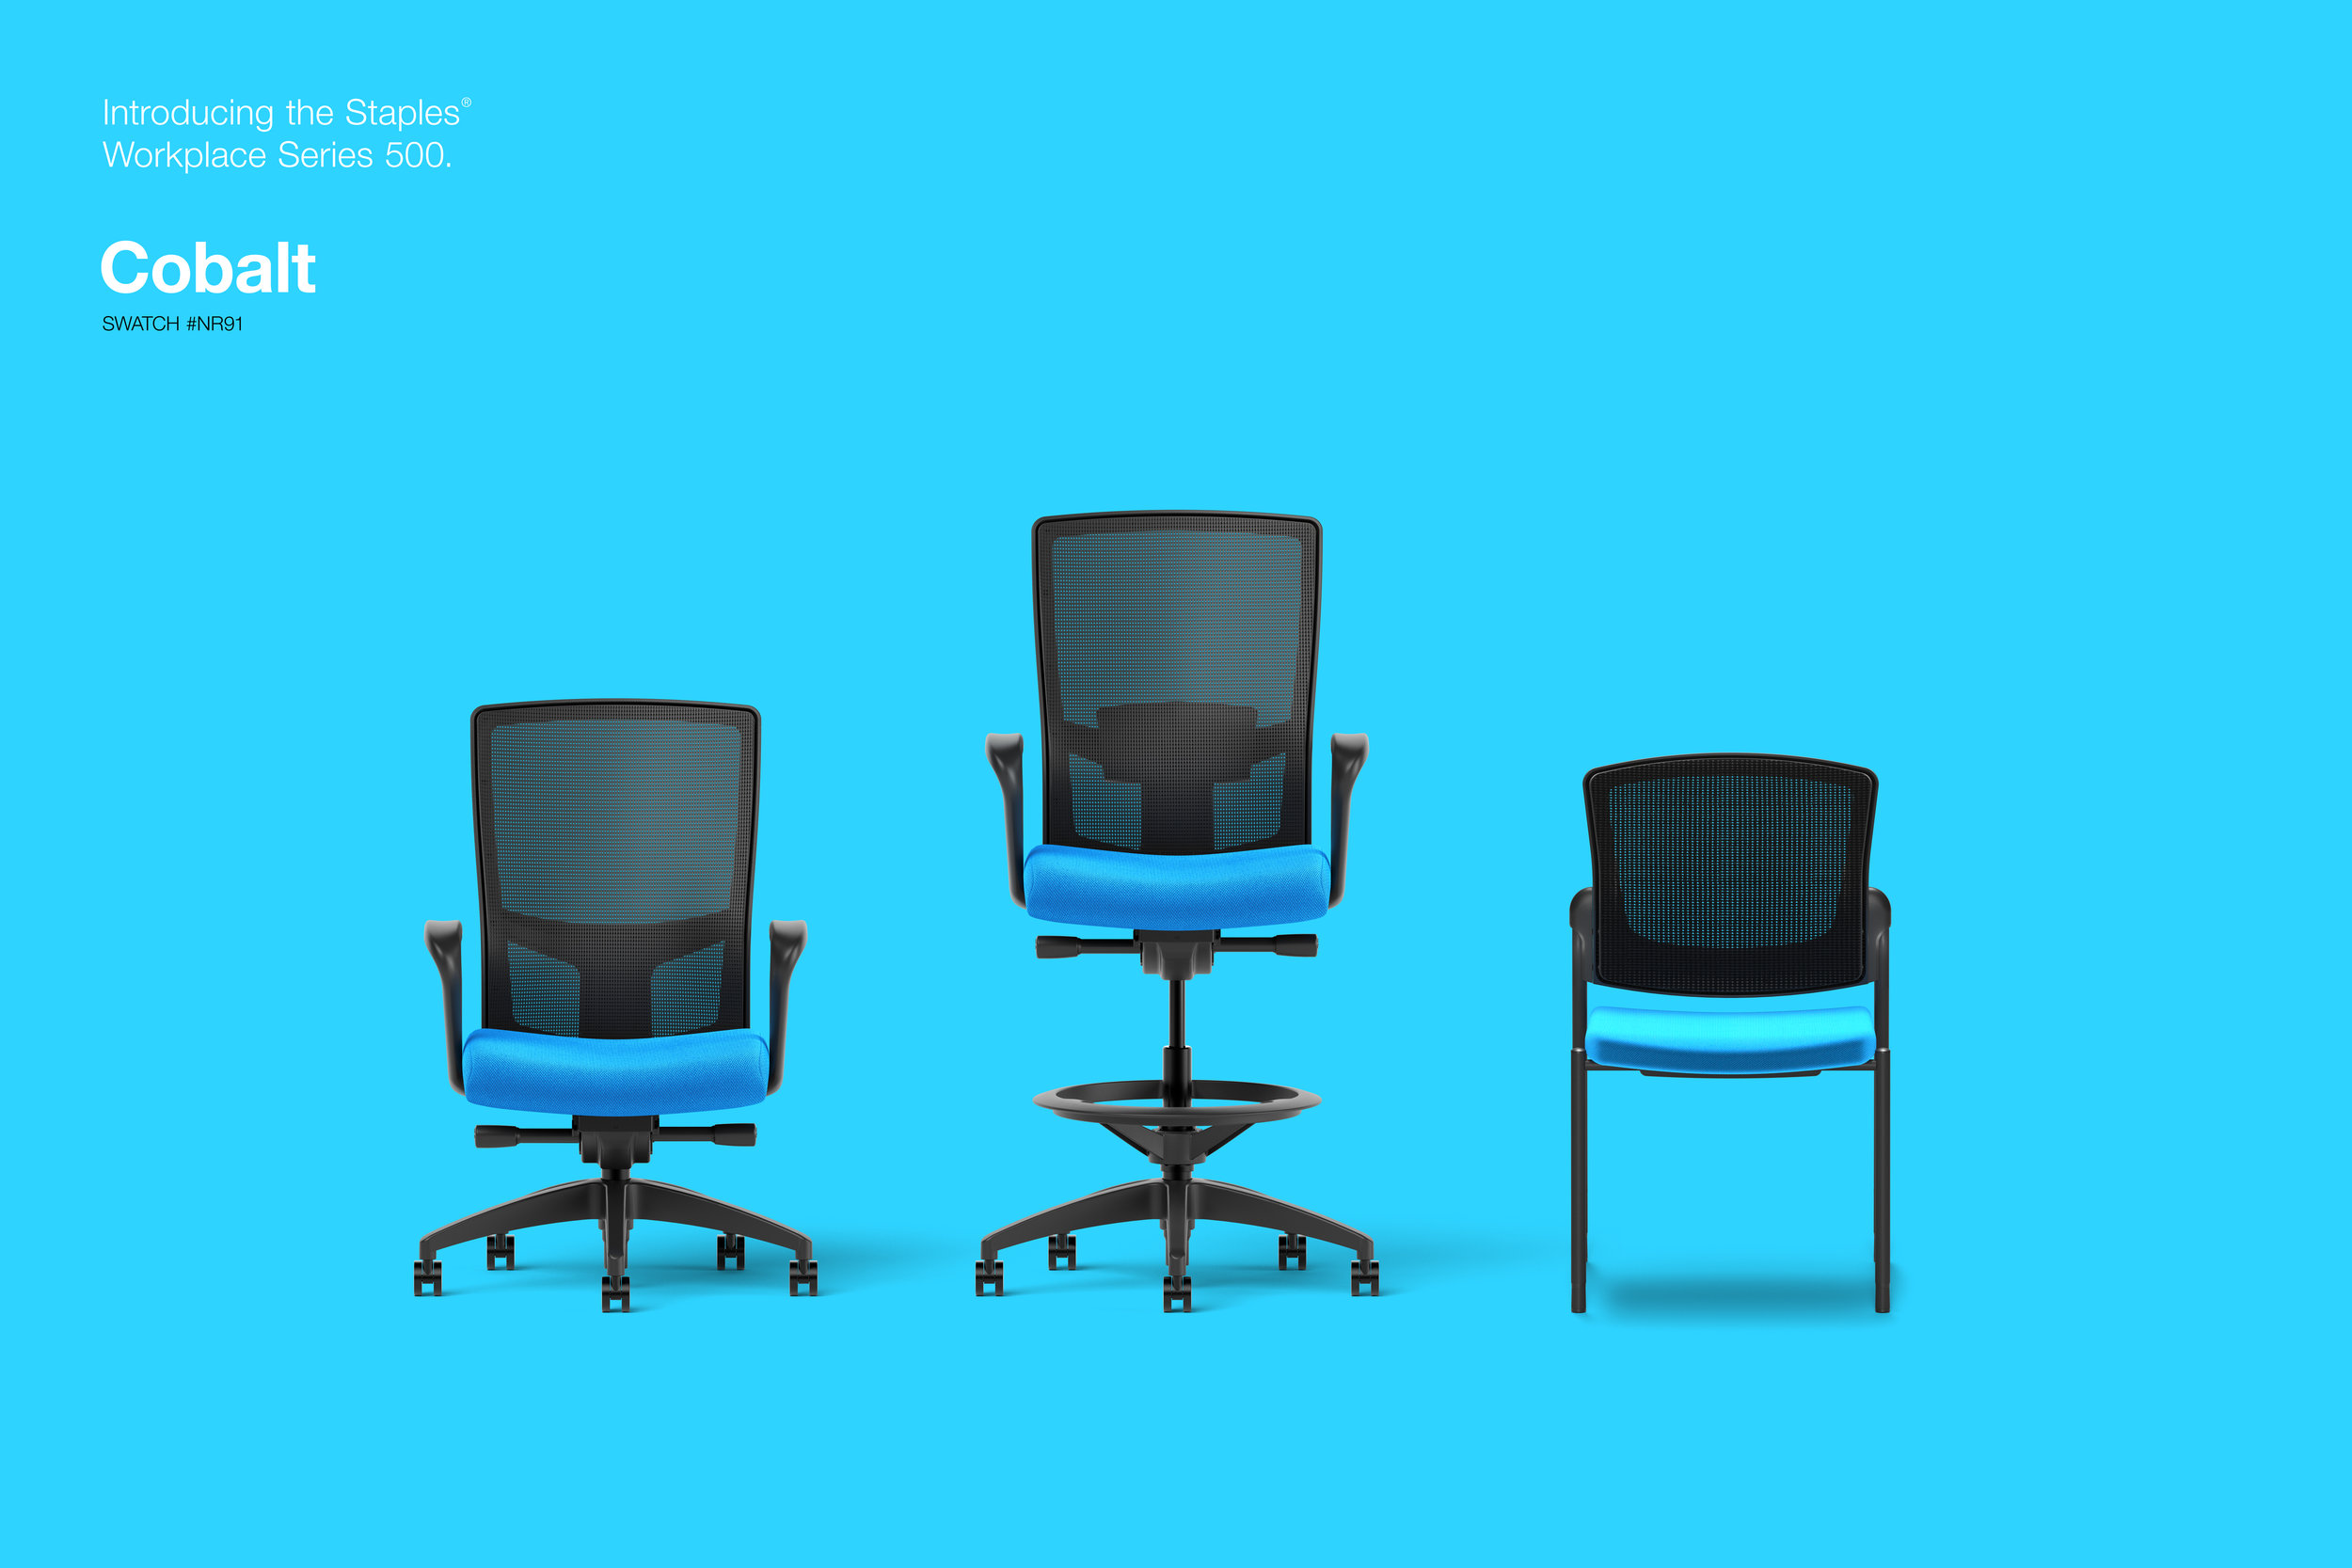 01_Staples-Workplace-Series-Collection-Cobalt.jpg